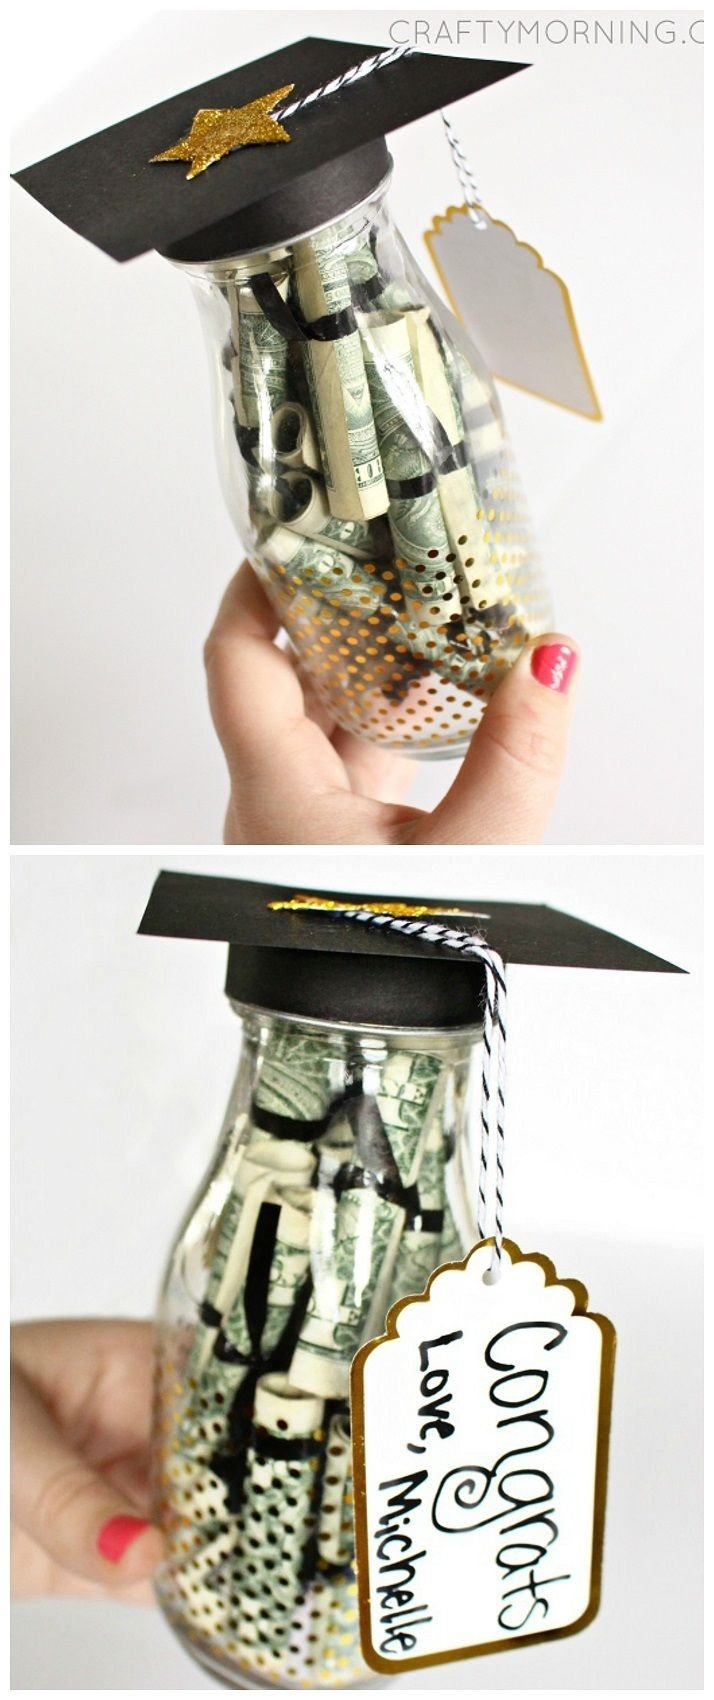 275 best graduation gift ideas images on pinterest | cute ideas